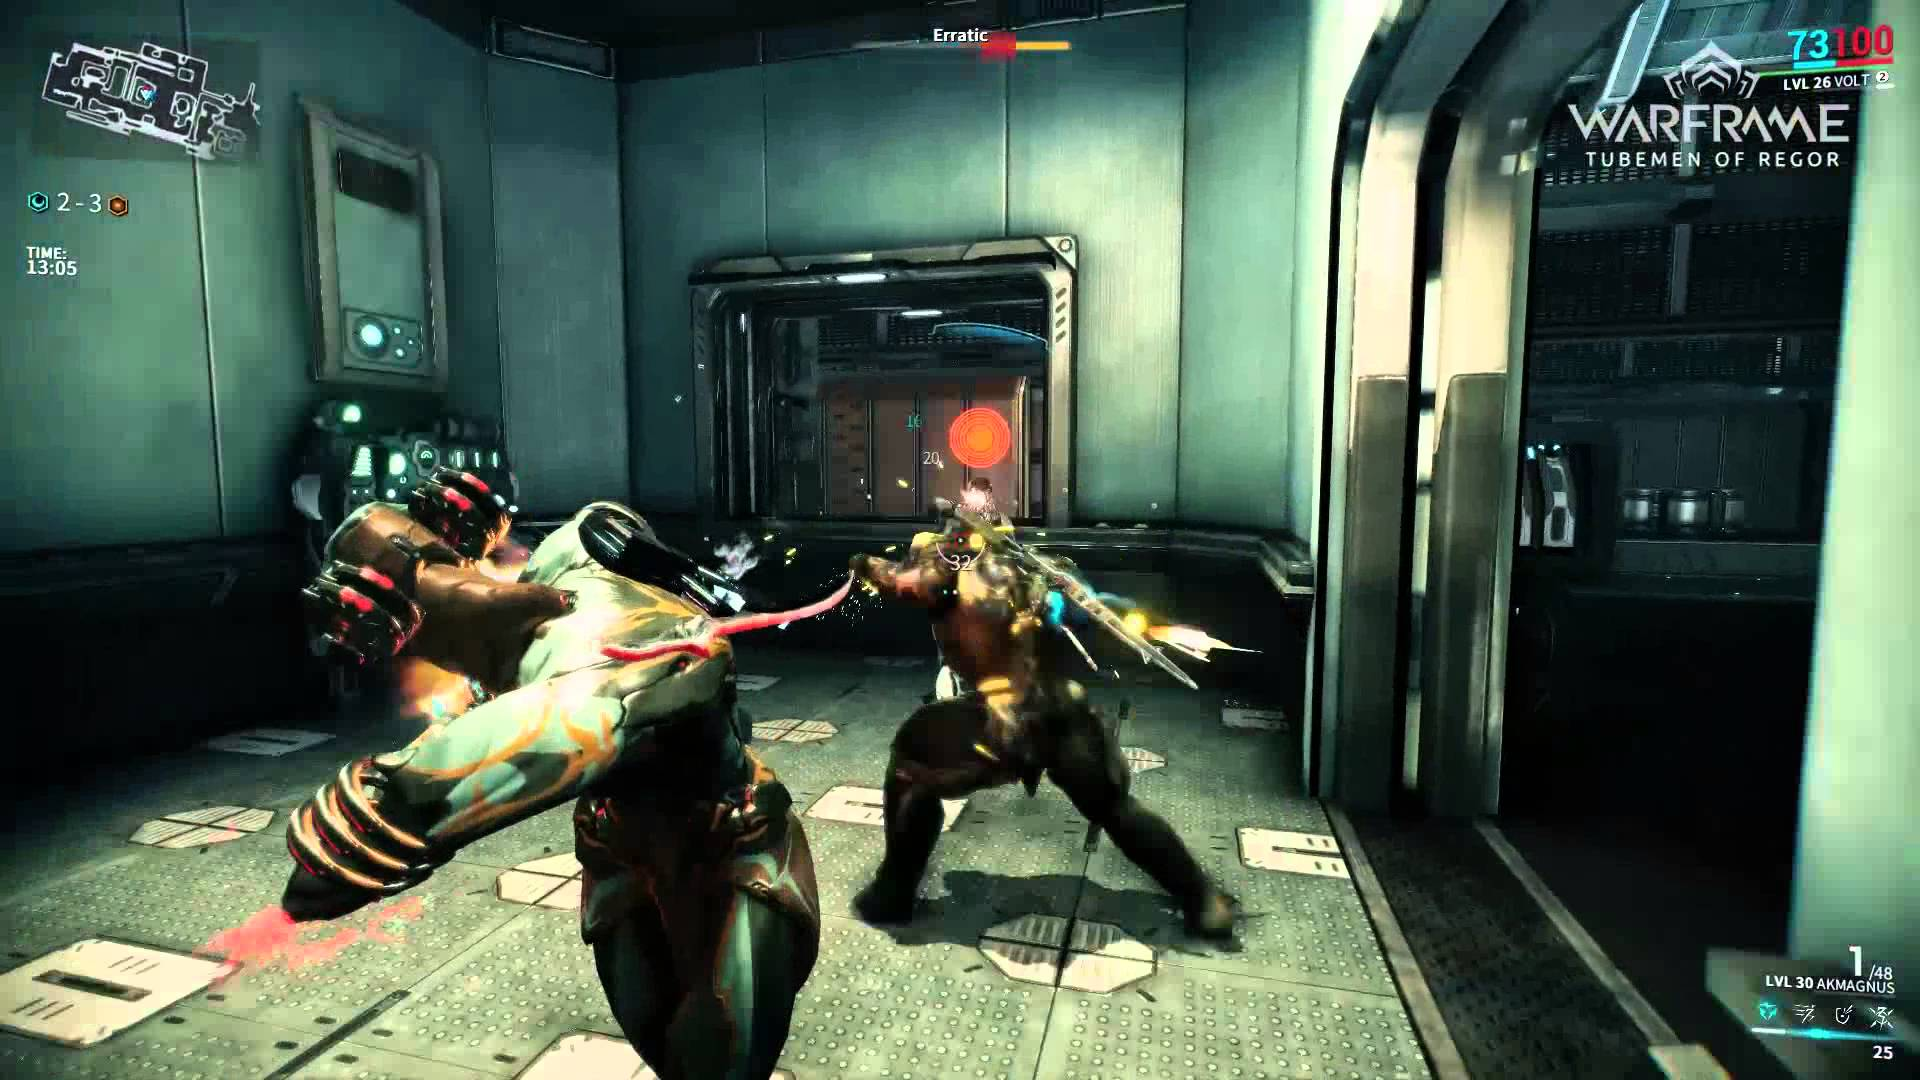 Warframe Tubemen of Regor Highlights Trailer Video Thumbnail